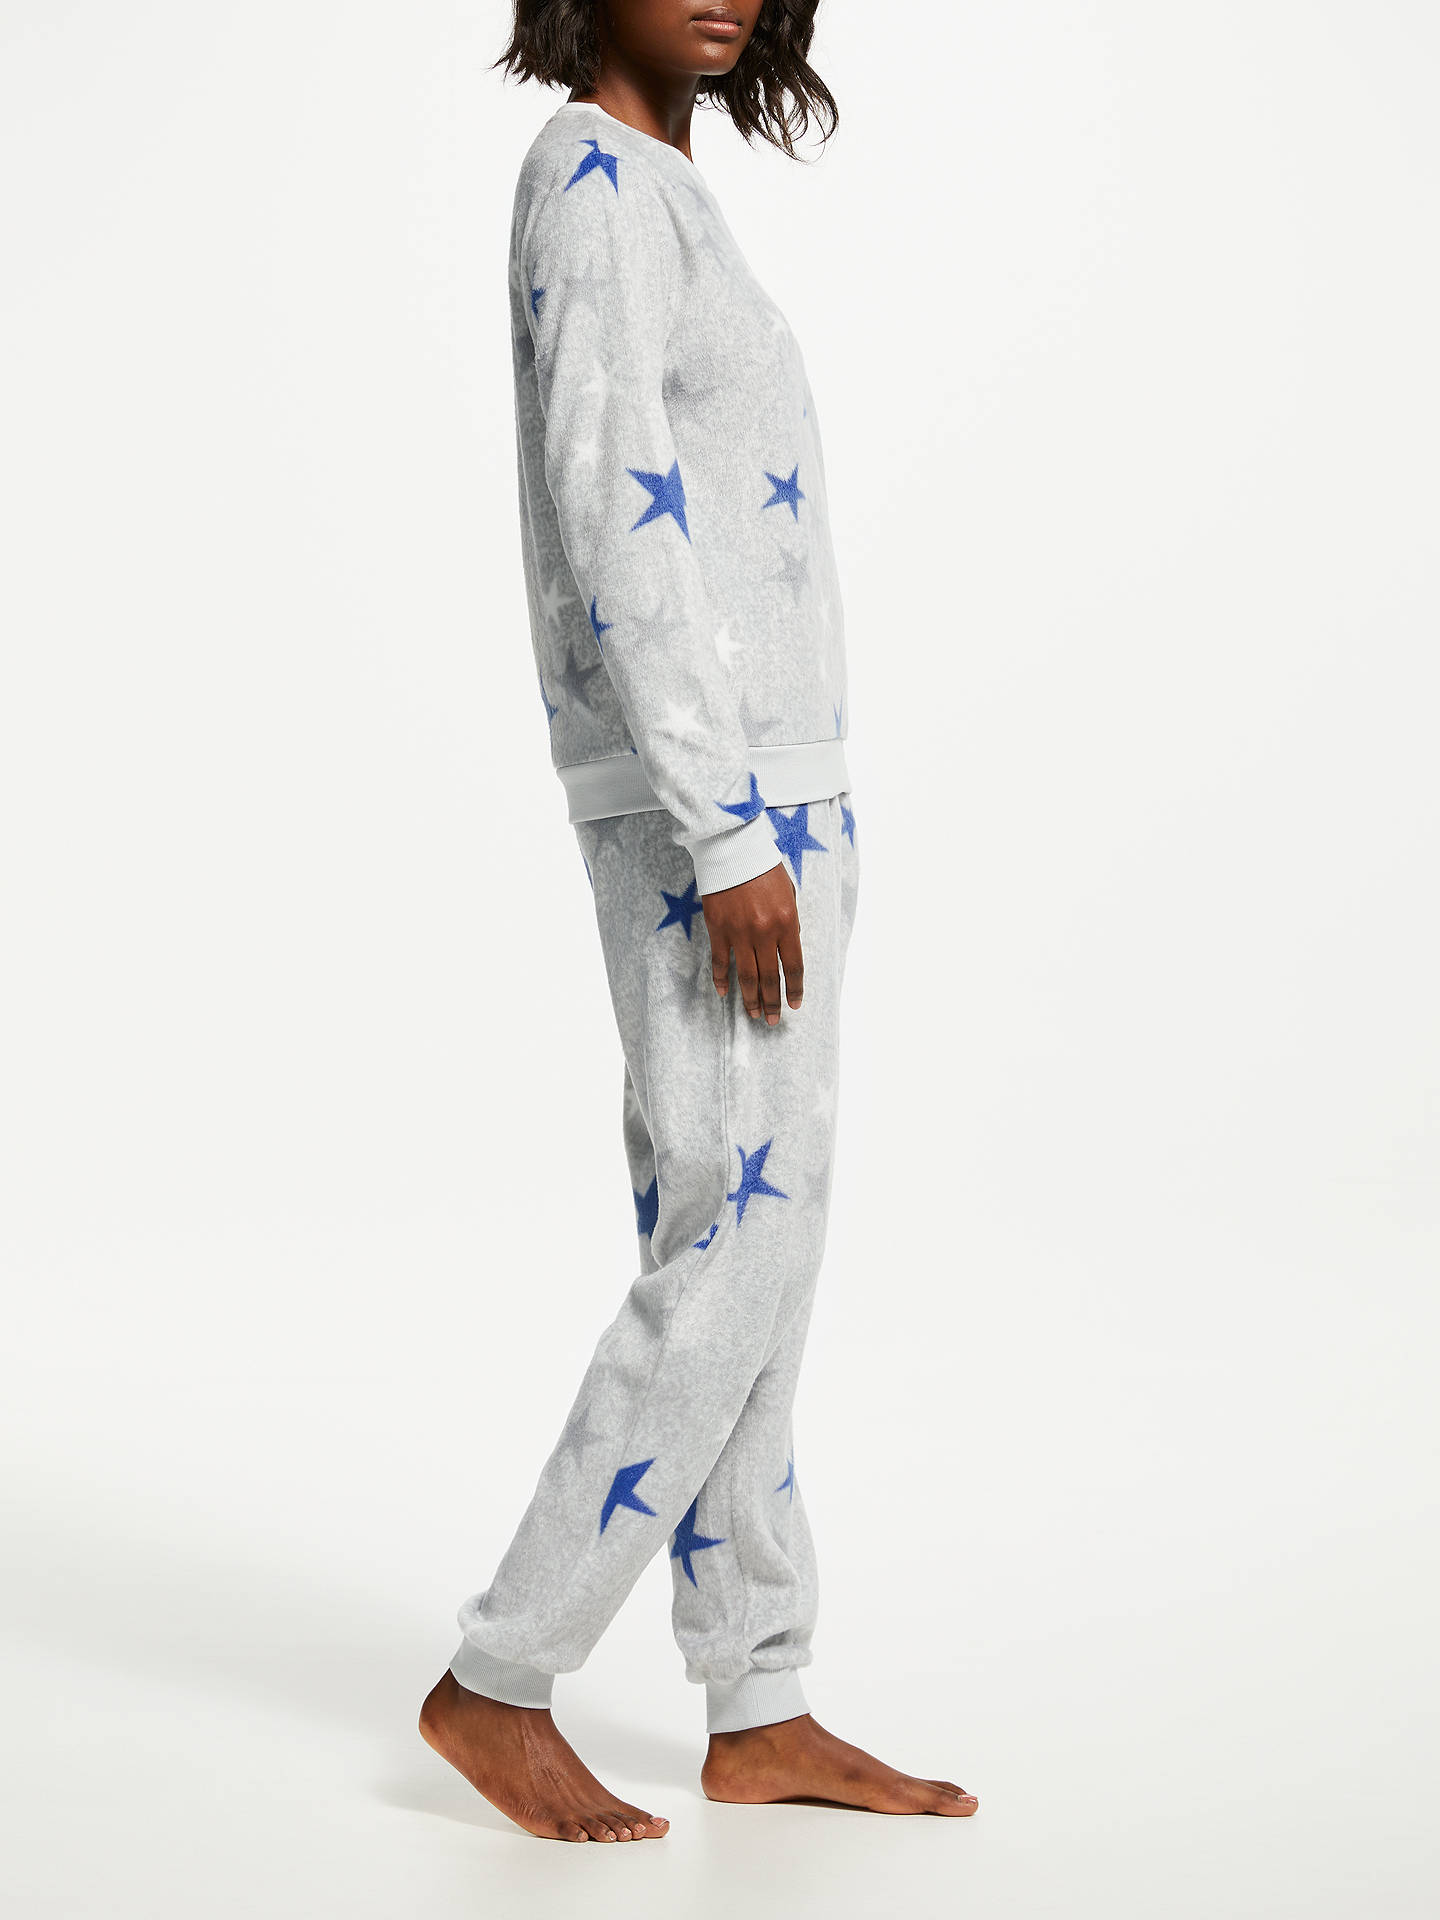 BuyJohn Lewis & Partners Star Print Fleece Twosie Pyjama Set, Grey, S Online at johnlewis.com